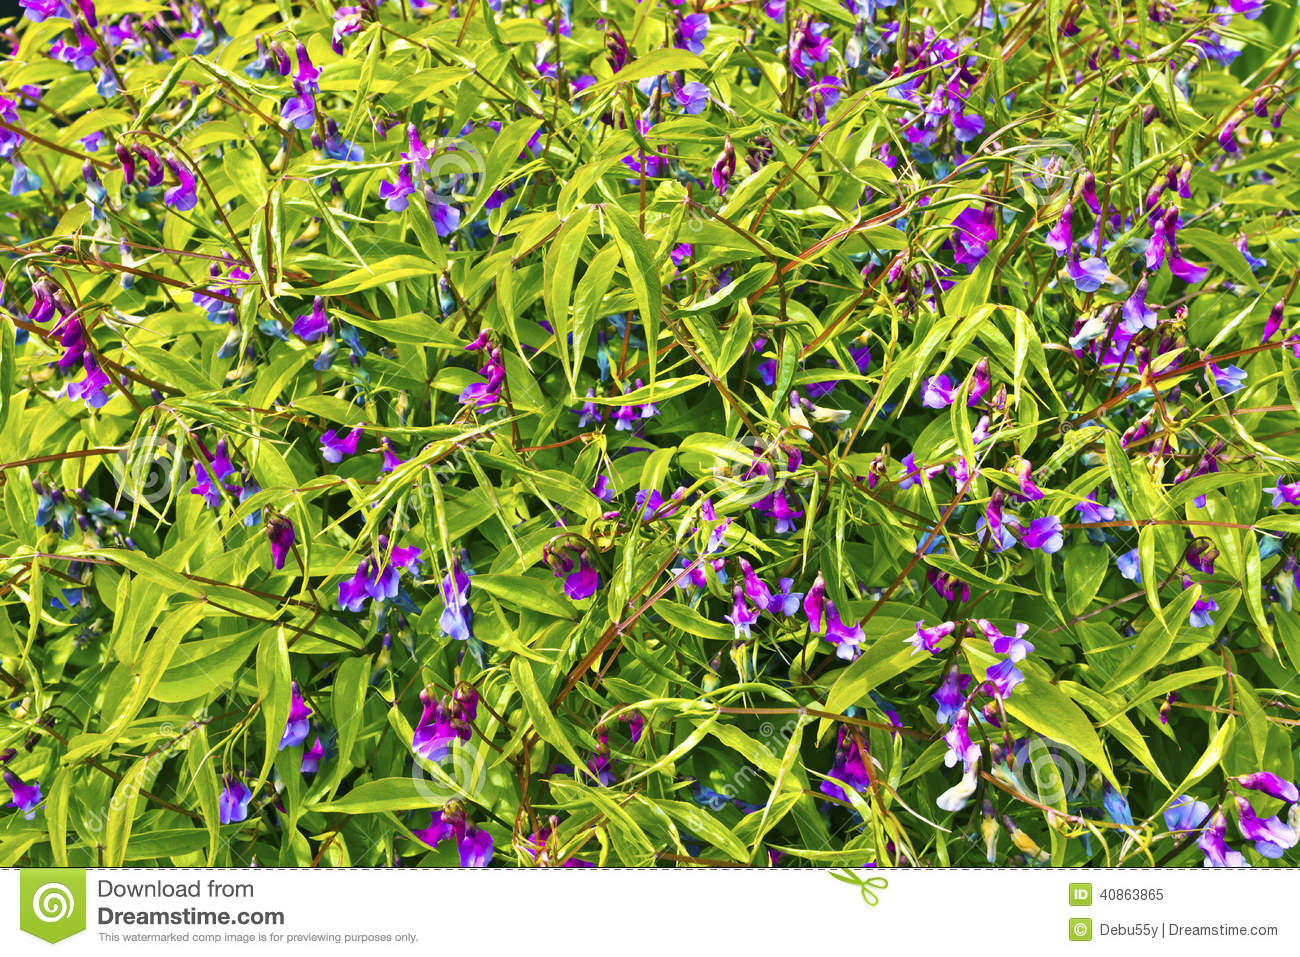 Small purple flowering plant close up stock image image of small purple flowering plant close up mightylinksfo Image collections